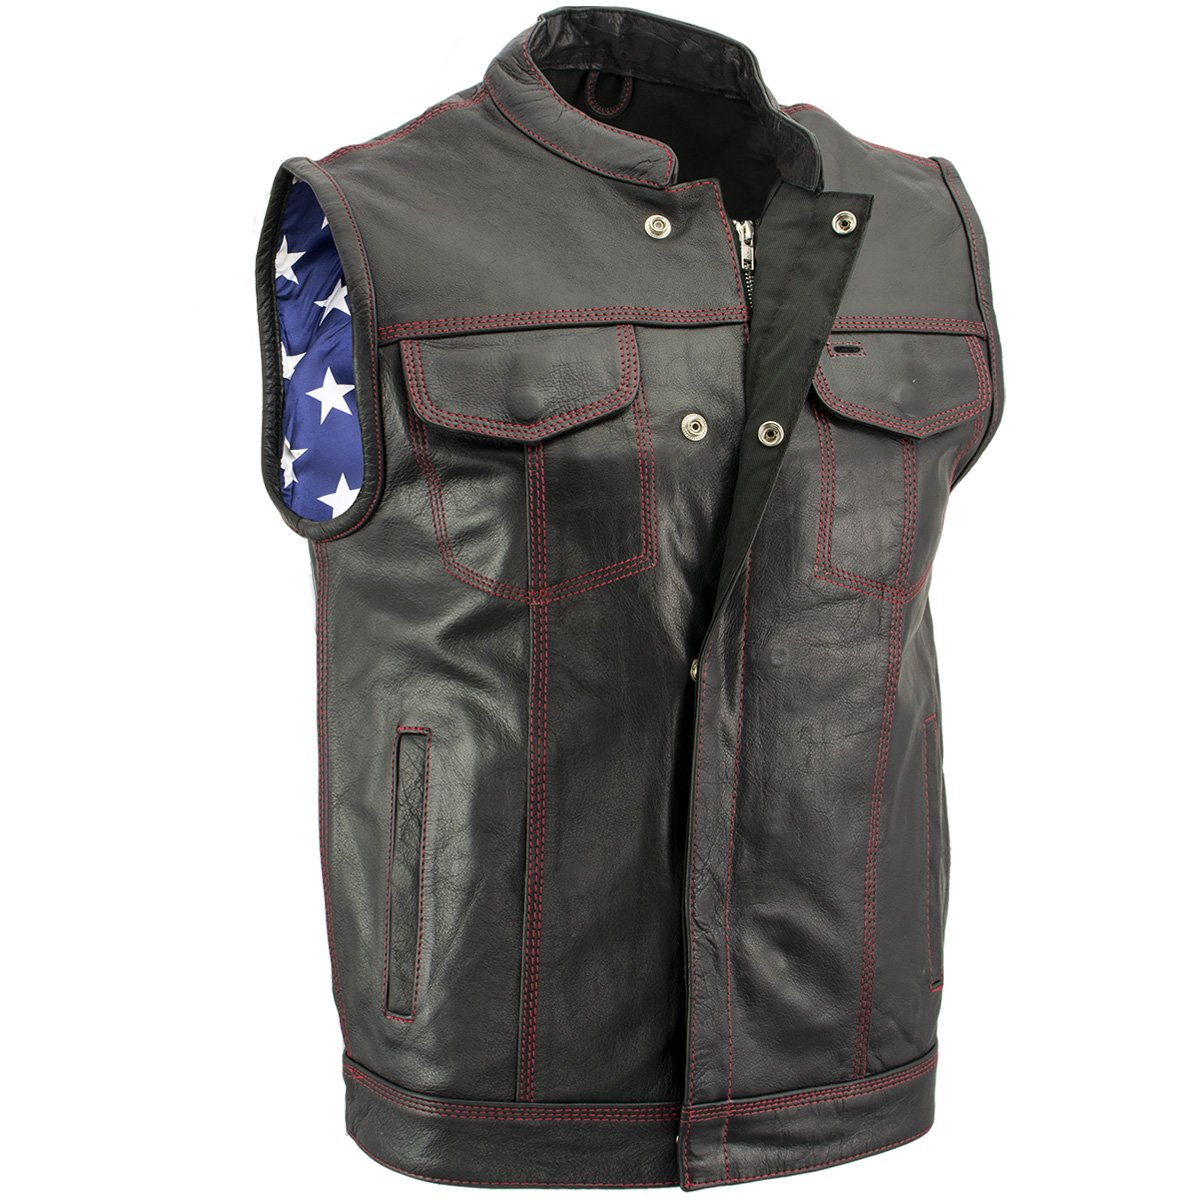 Leather Vest with Red Stitching Jacket for Men